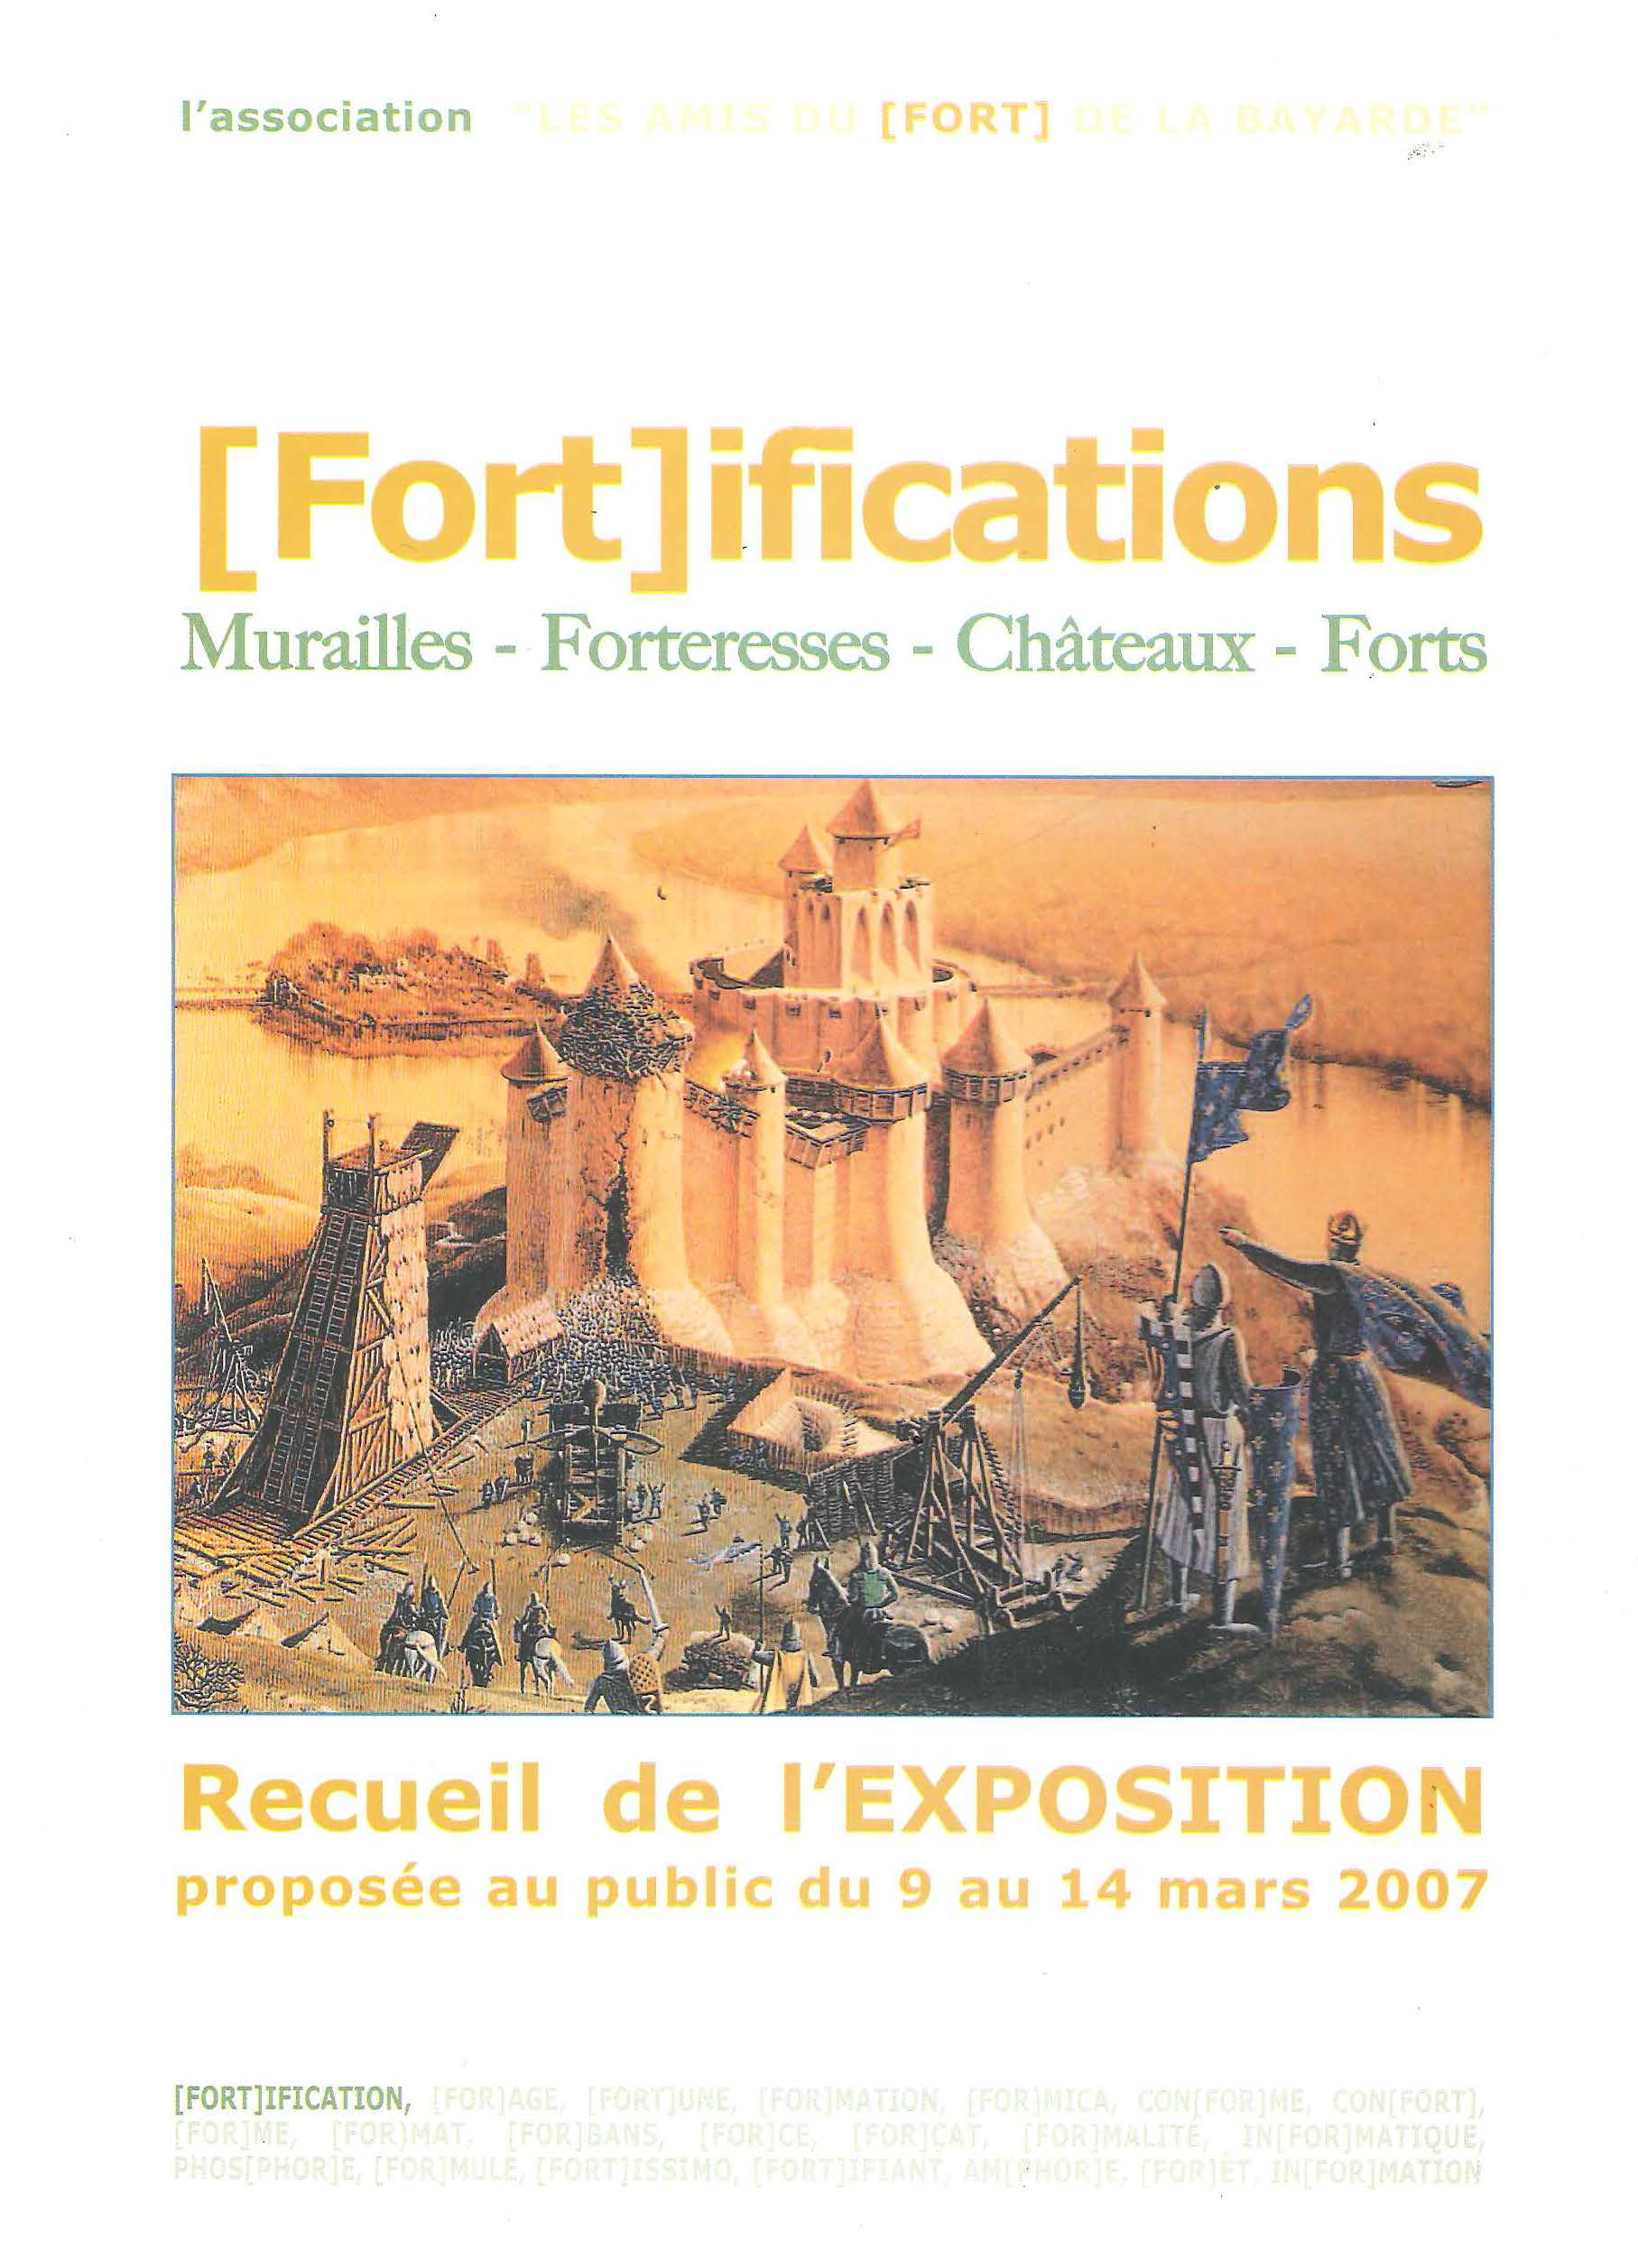 Fortifications : Murailles - Forteresses - Châteaux - Forts